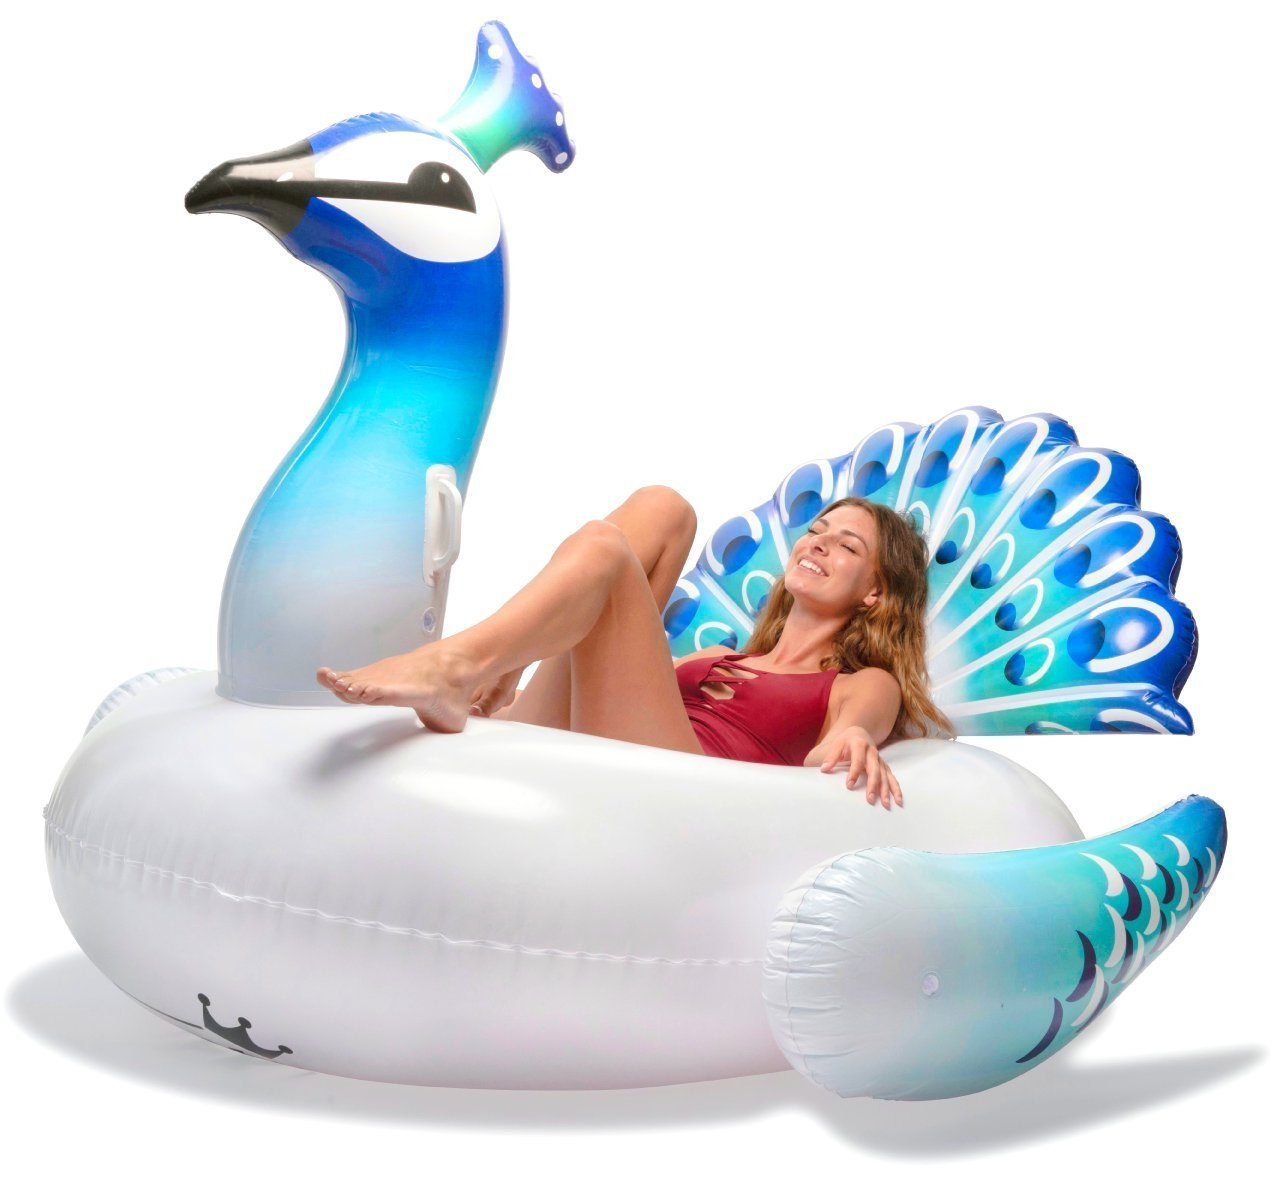 Fly 150 Peacock Floating Row Water Adult Riding Floating Bed Inflatable Floating Row